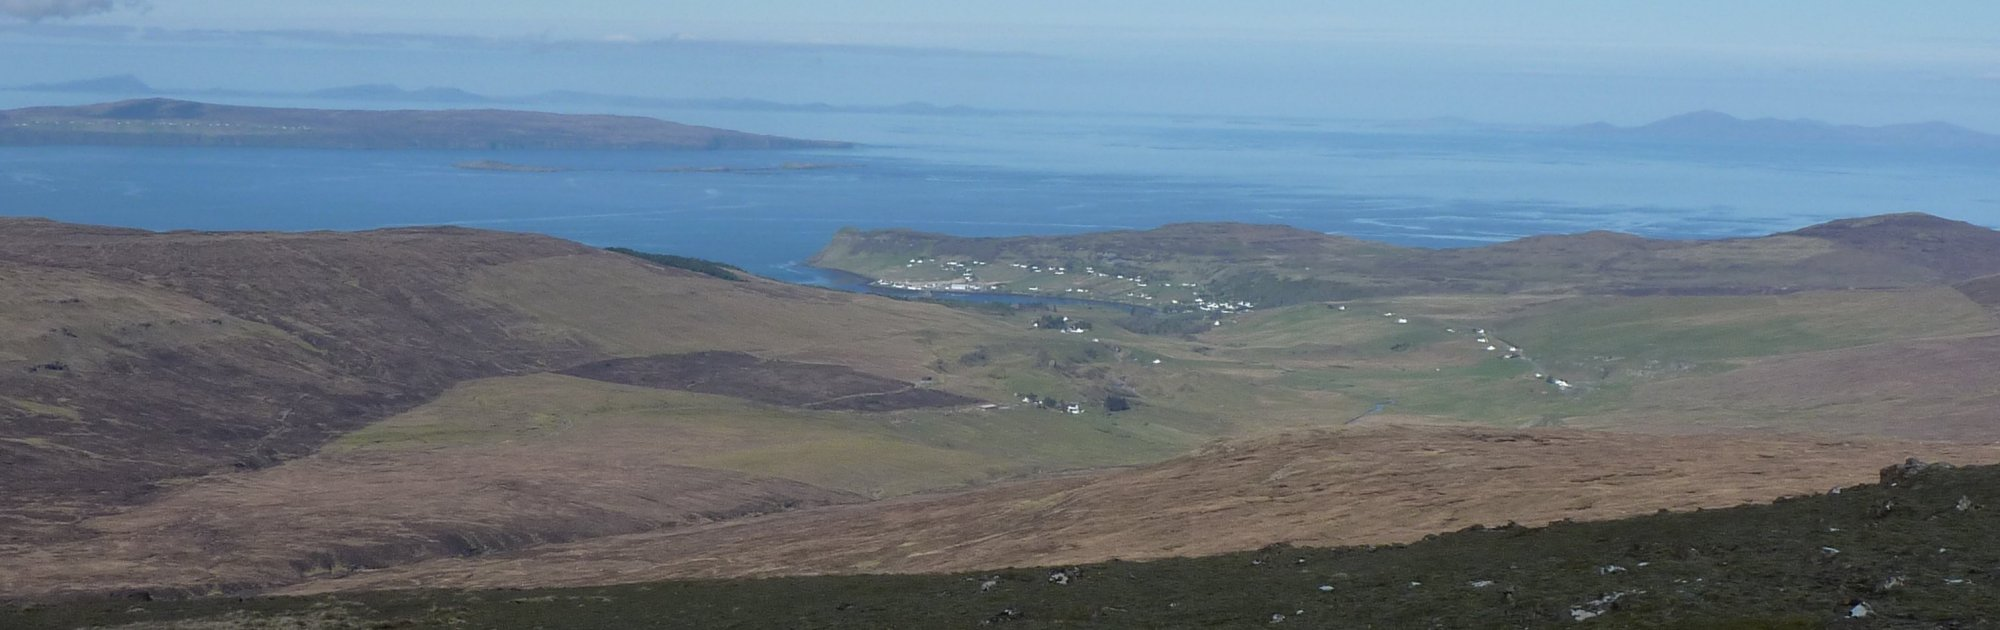 The town of Uig far below